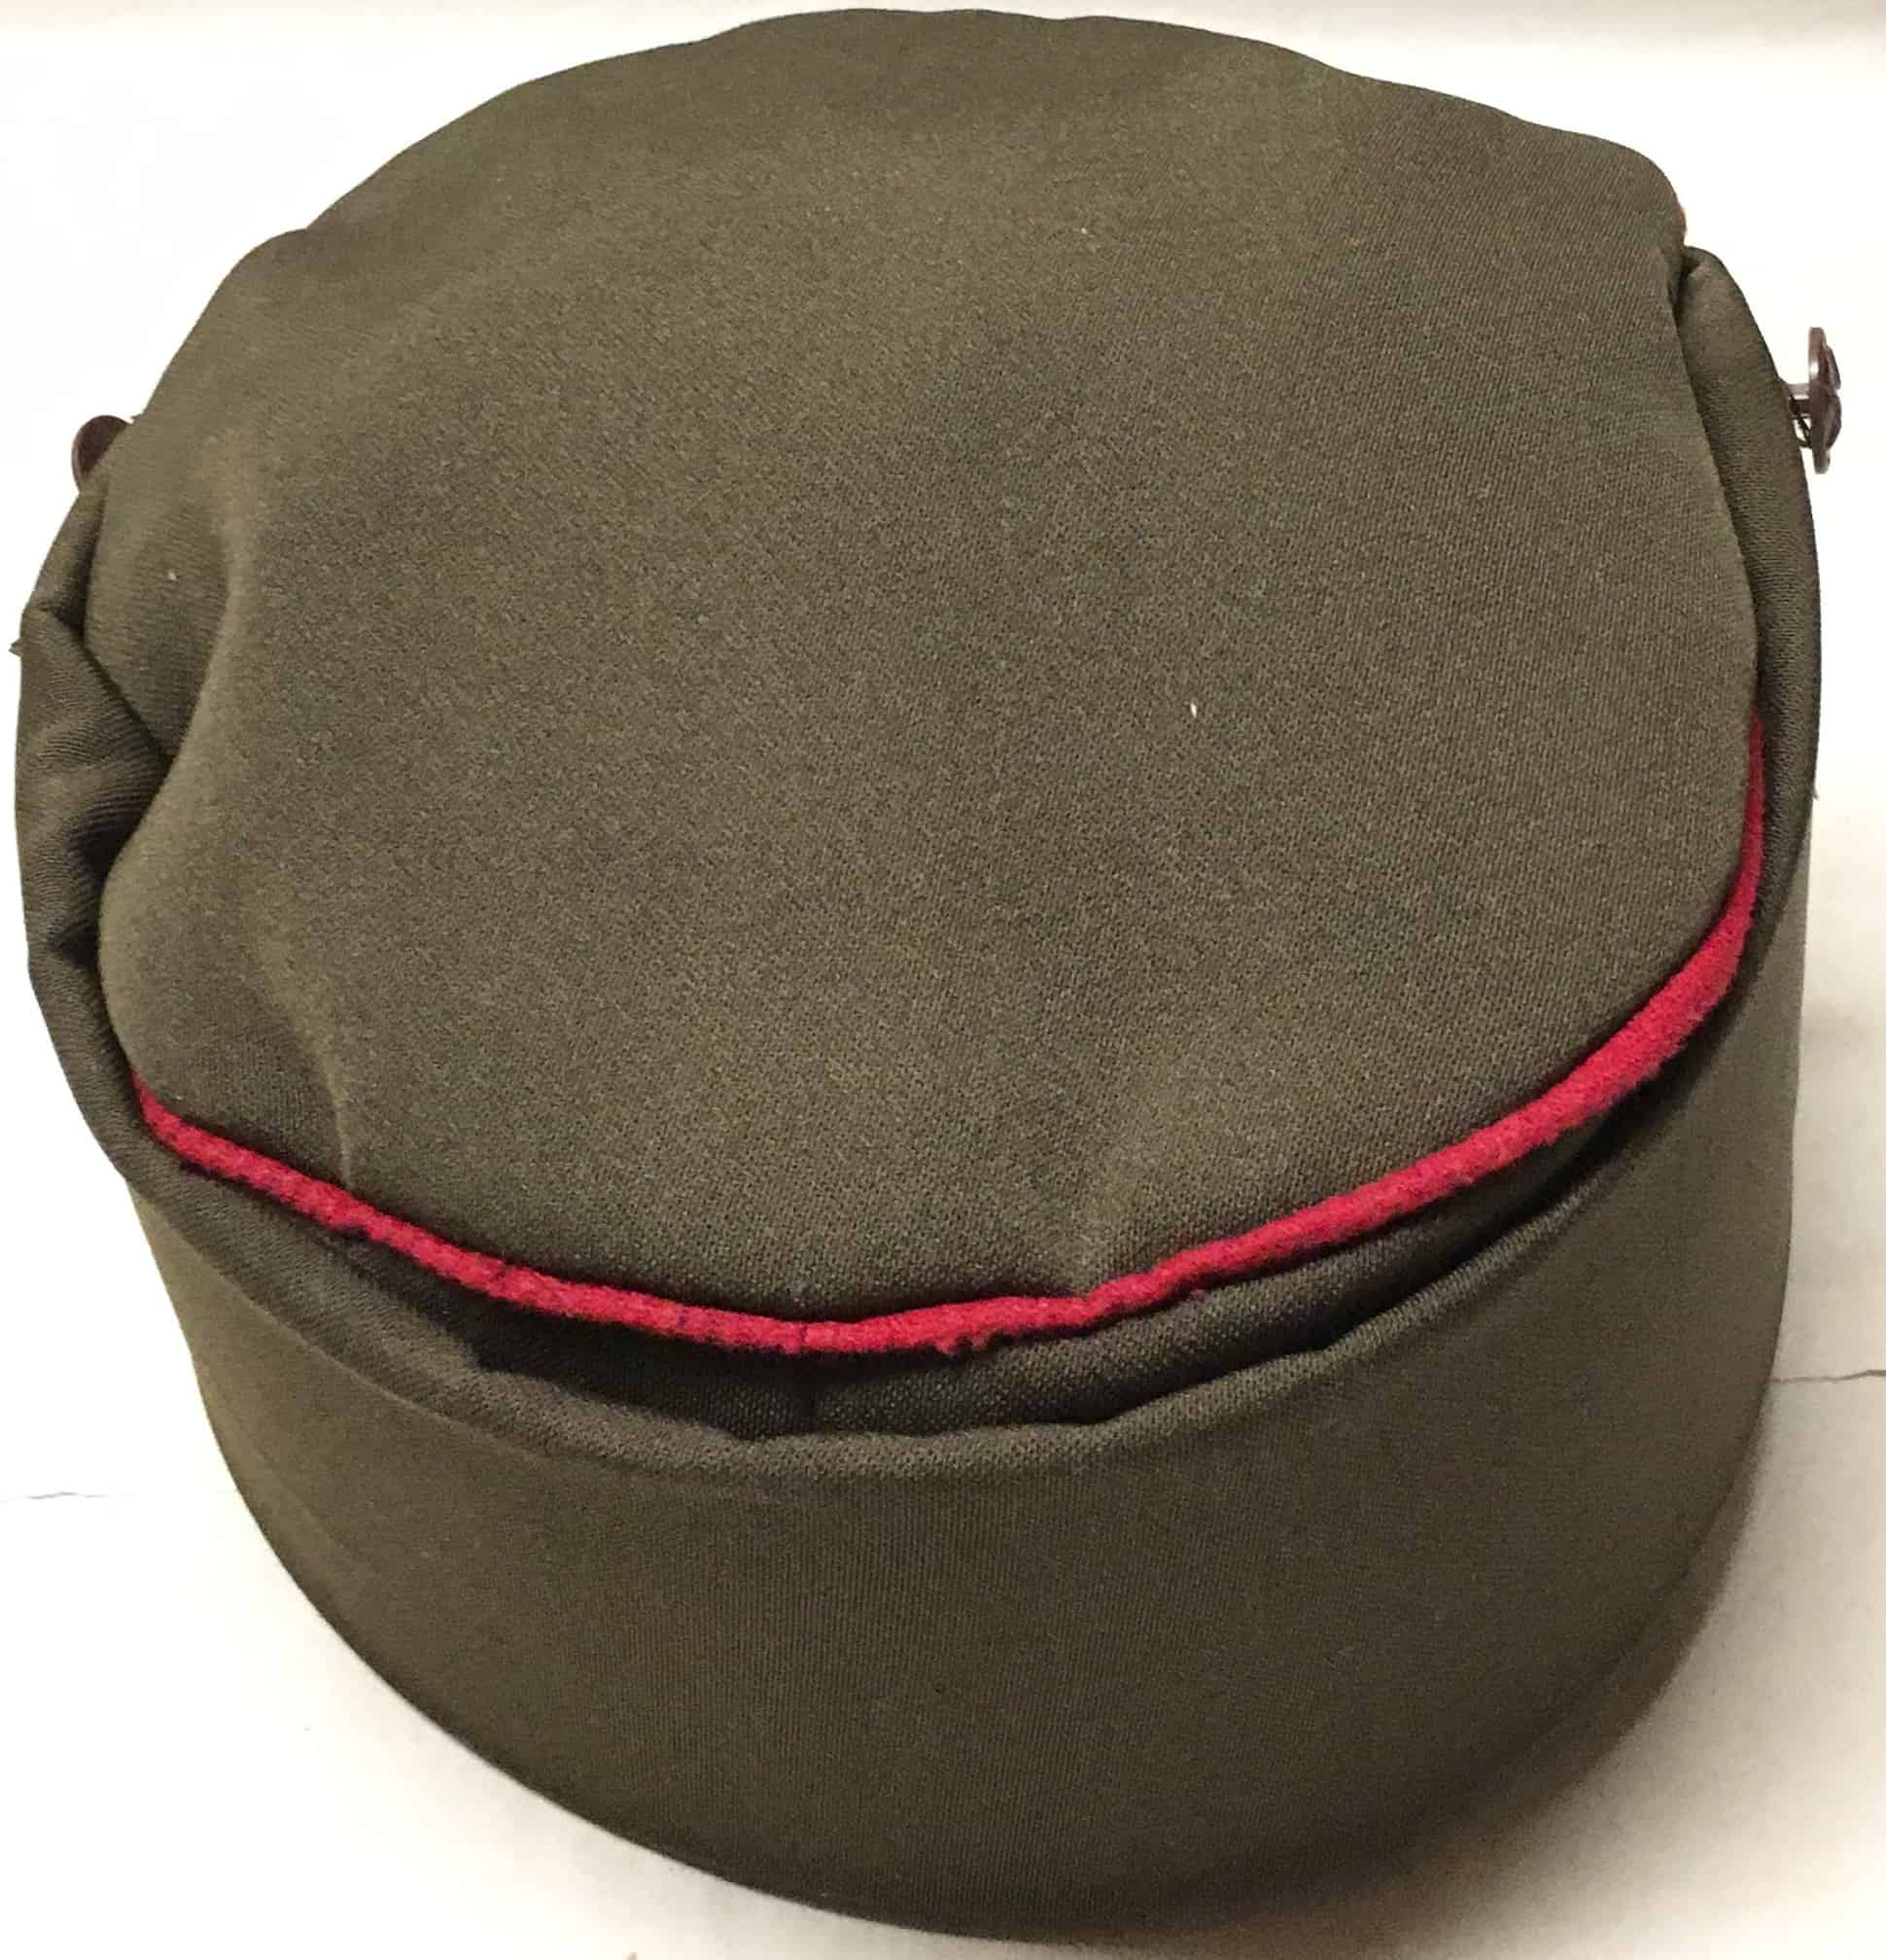 5968e89bf03 ... North Korean People s Army Officer s Field Cap 100% Authenticity  Guaranteed 30-day Returns. Sale!